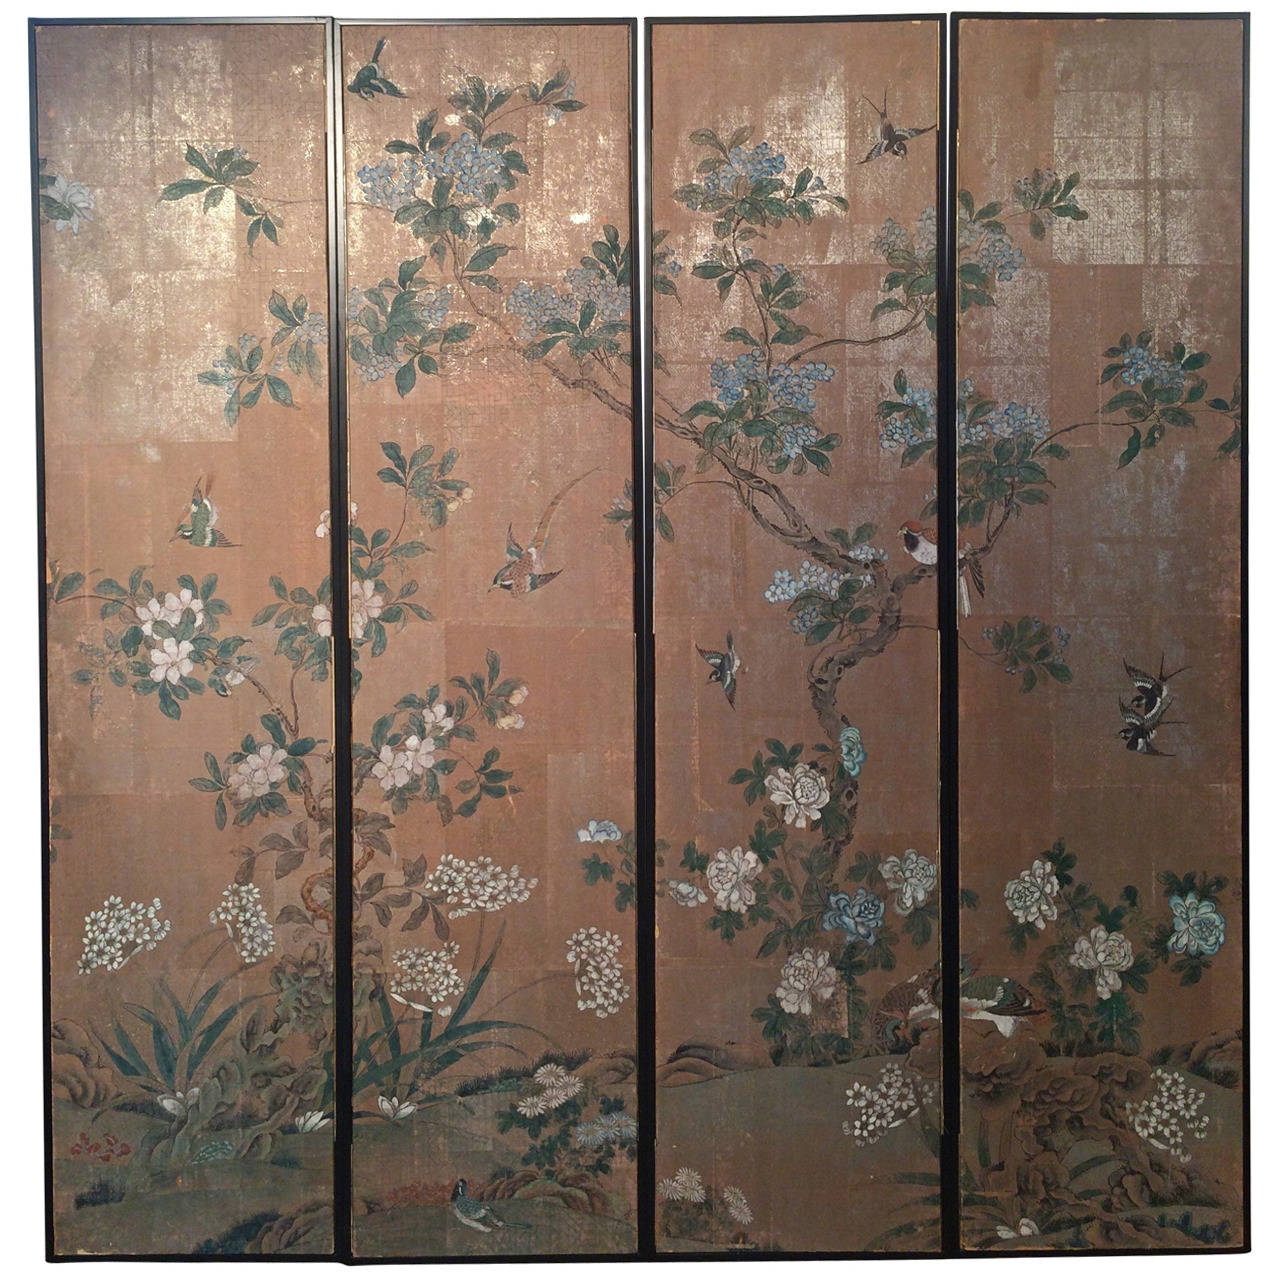 Framed Vintage Gracie Chinoiserie Wallpaper Panels For Sale at 1stdibs 1280x1280